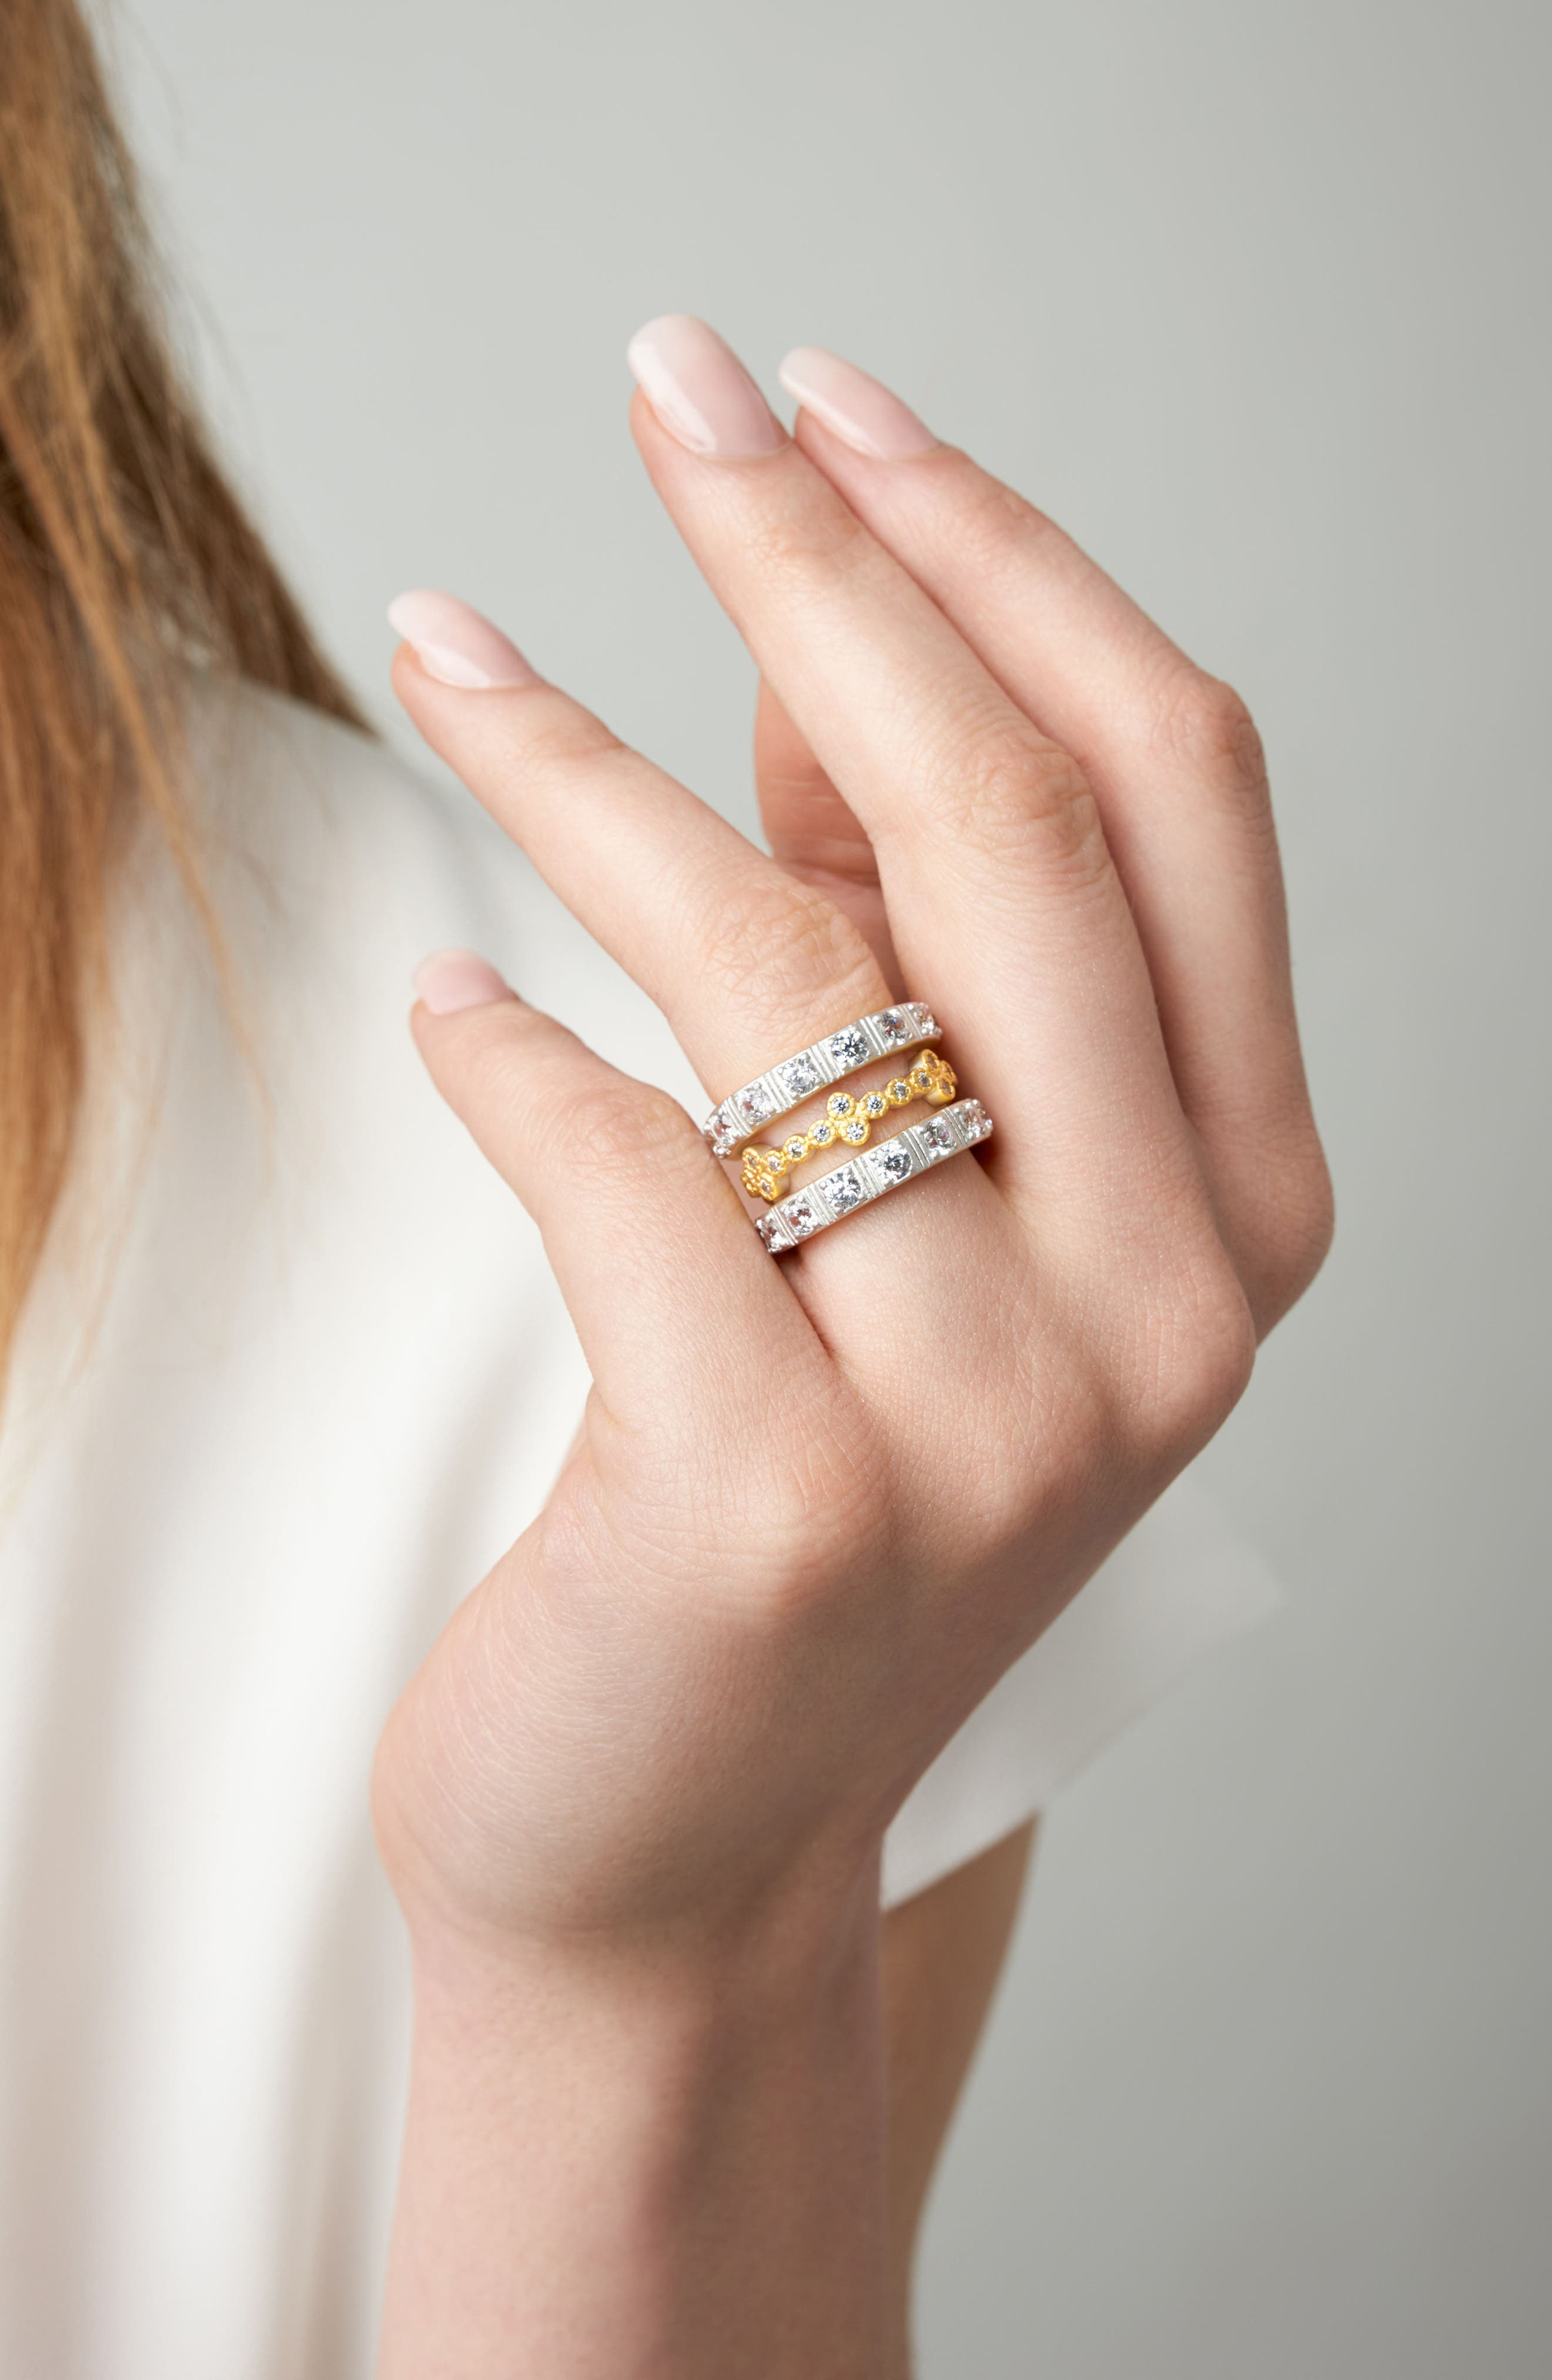 Set of Three Stacking Rings,                             Alternate thumbnail 3, color,                             Gold/ Silver